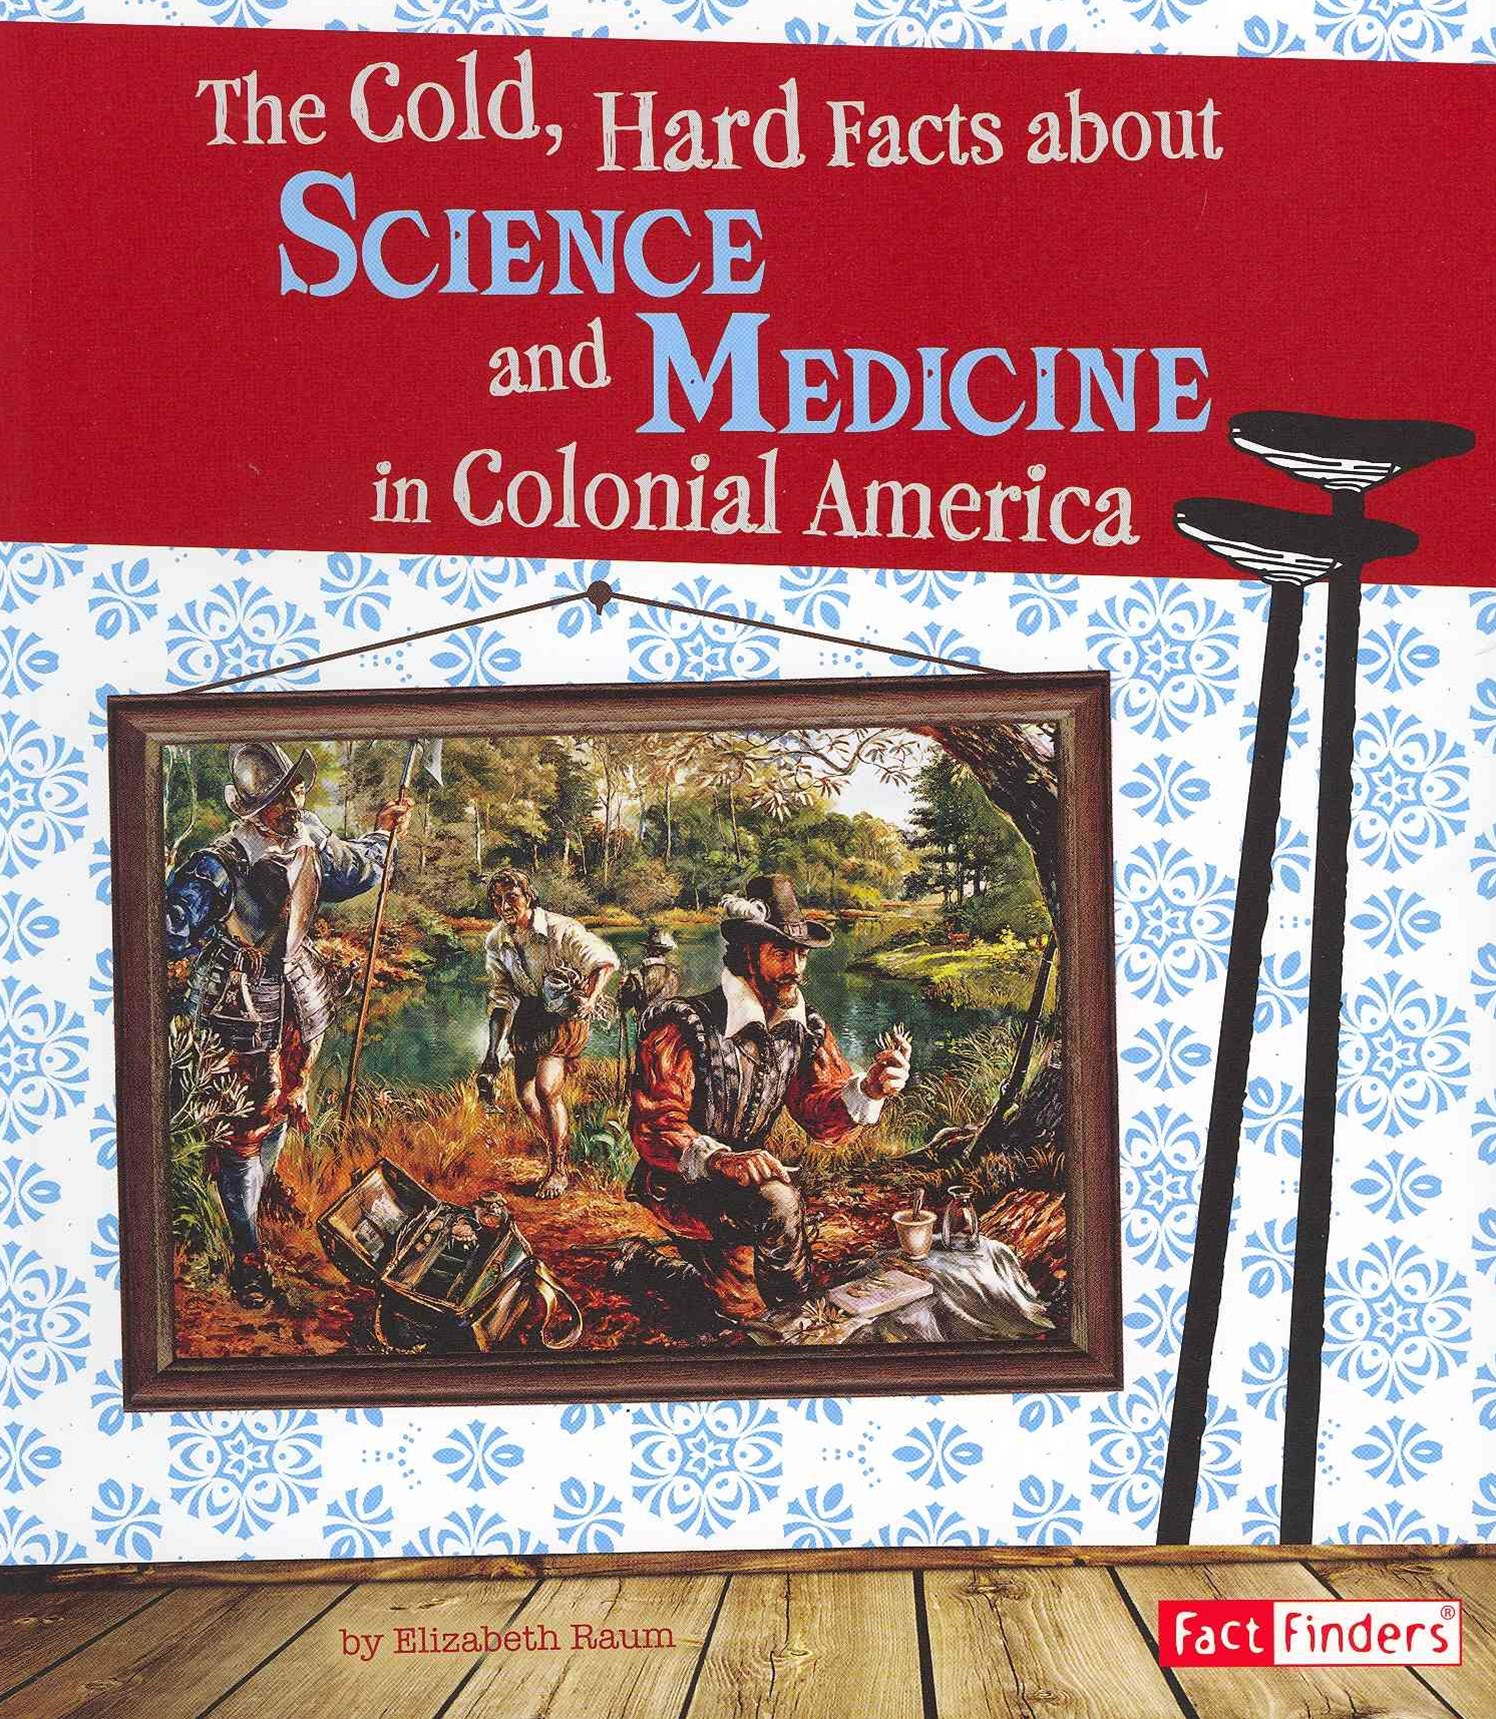 The Cold, Hard Facts about Science and Medicine in Colonial America